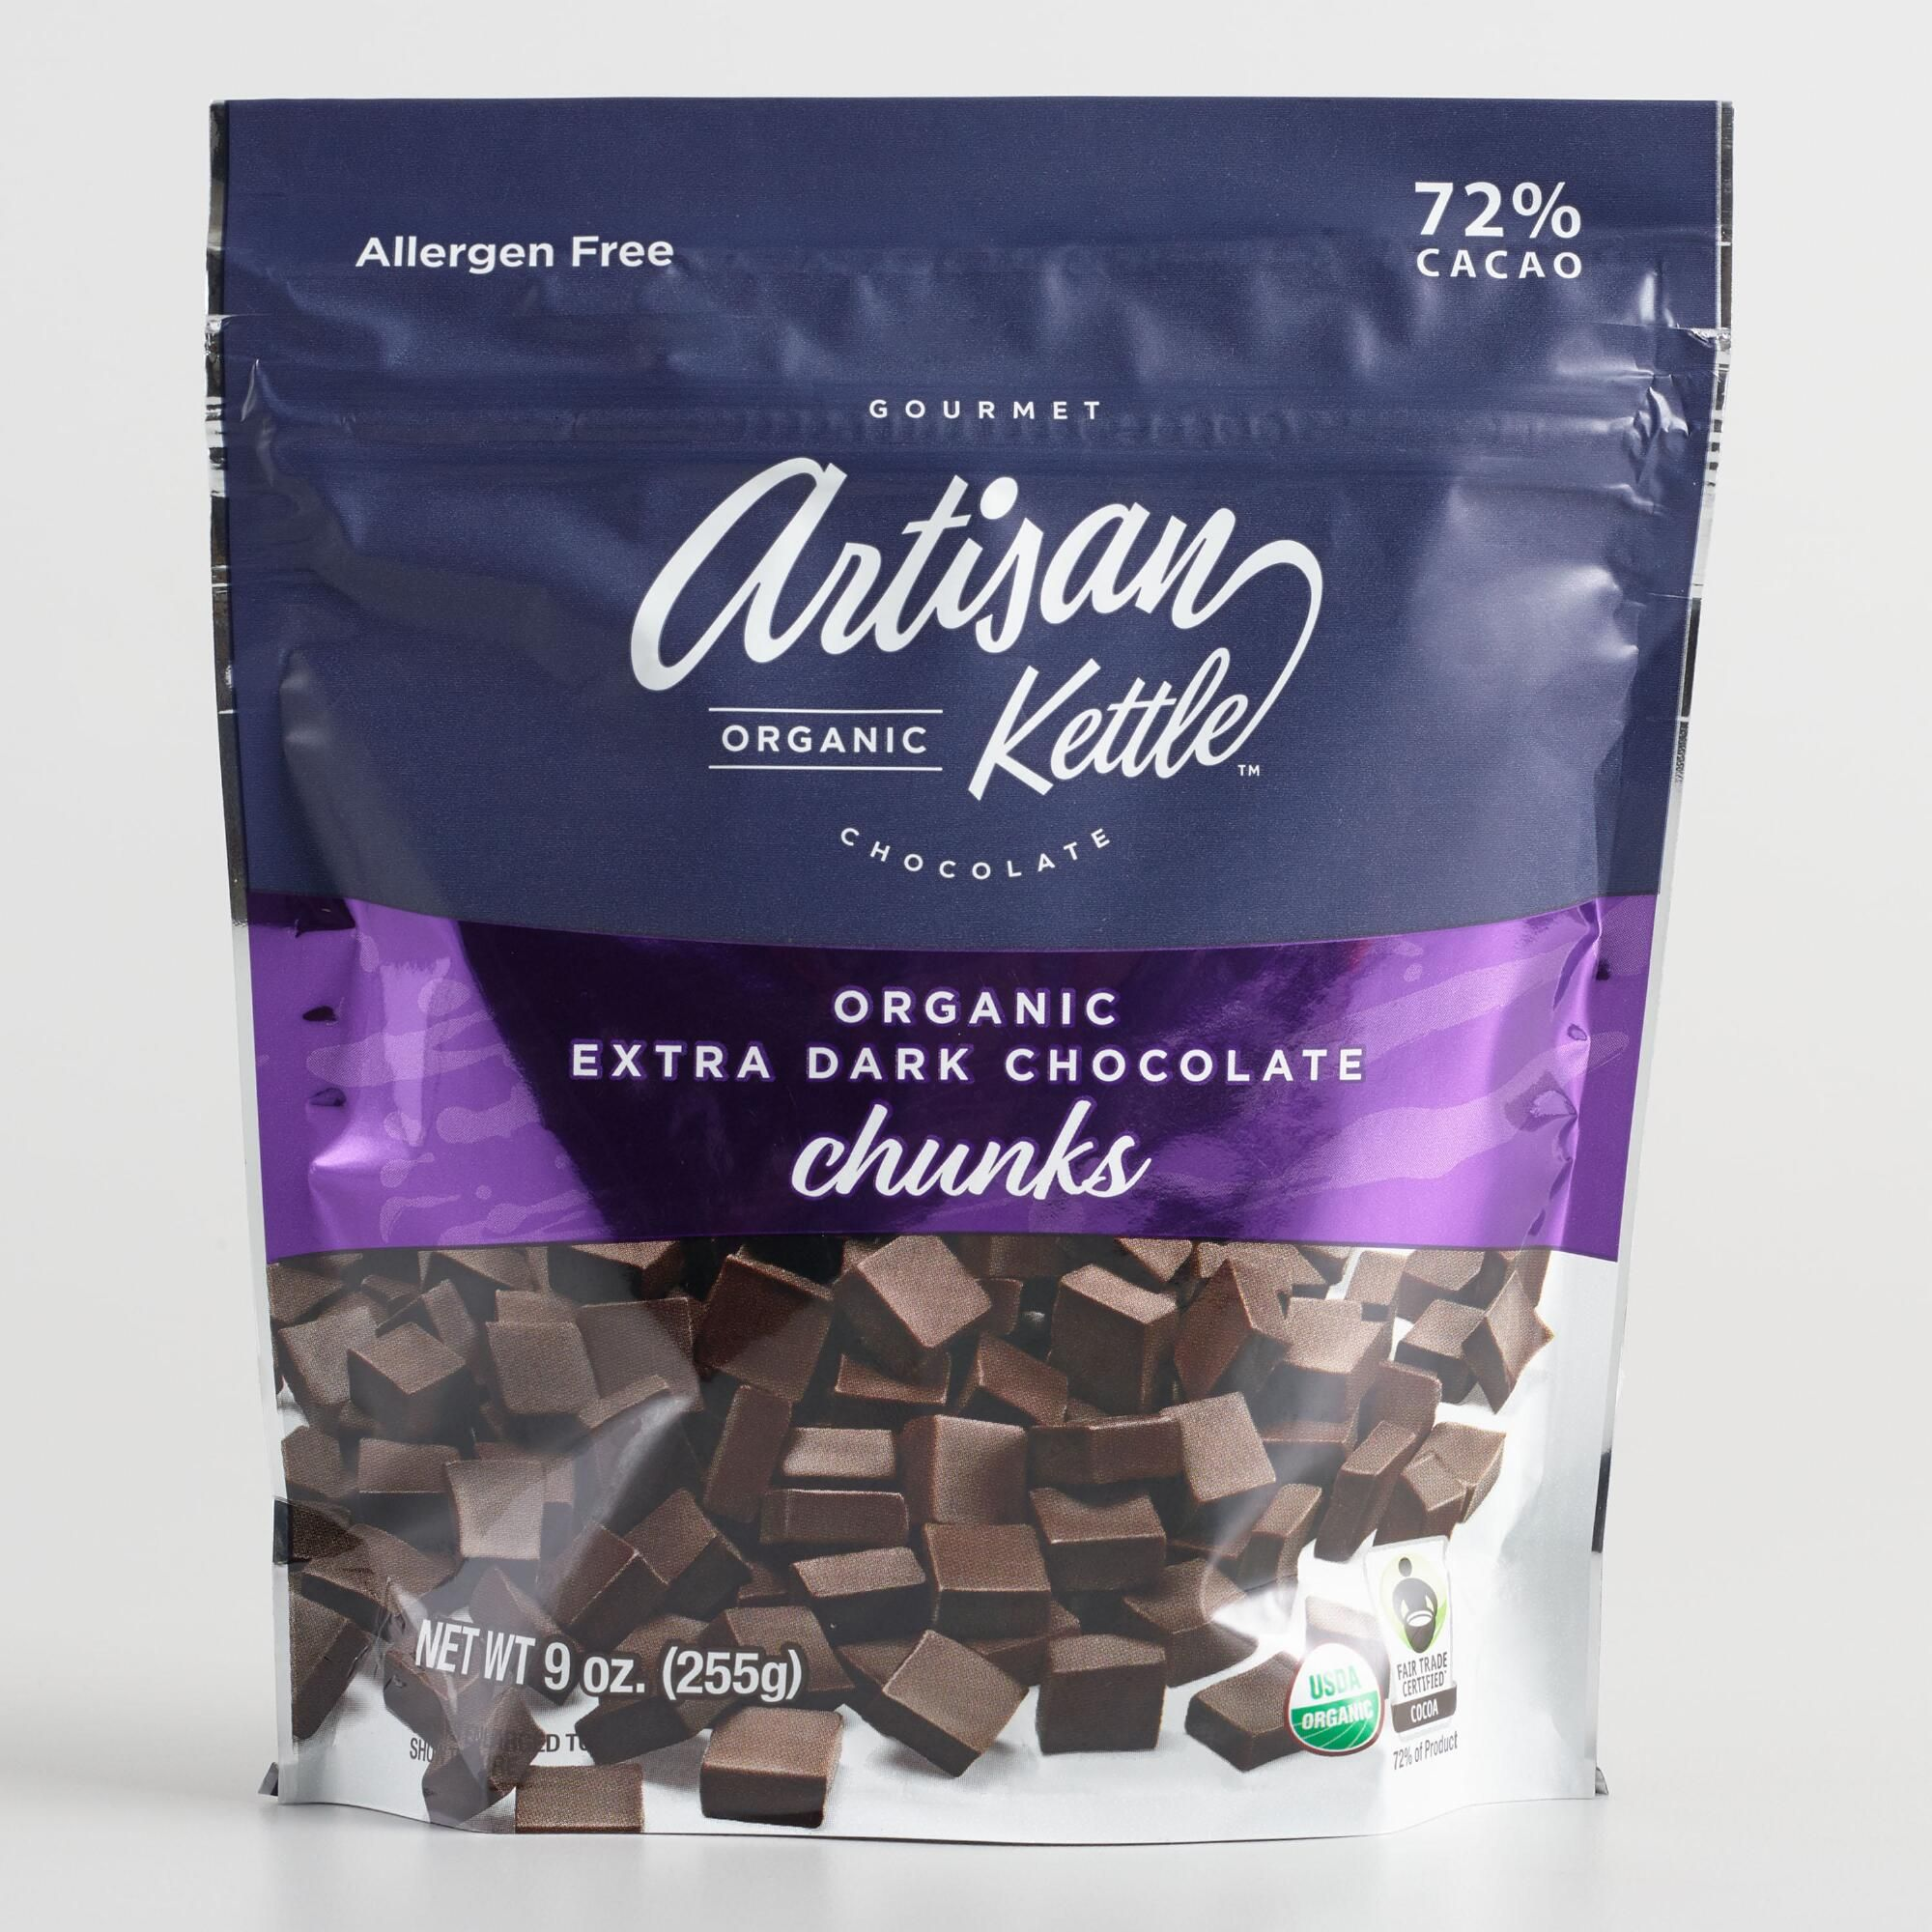 Artisan Kettle Organic Extra Dark Chocolate Chunks by